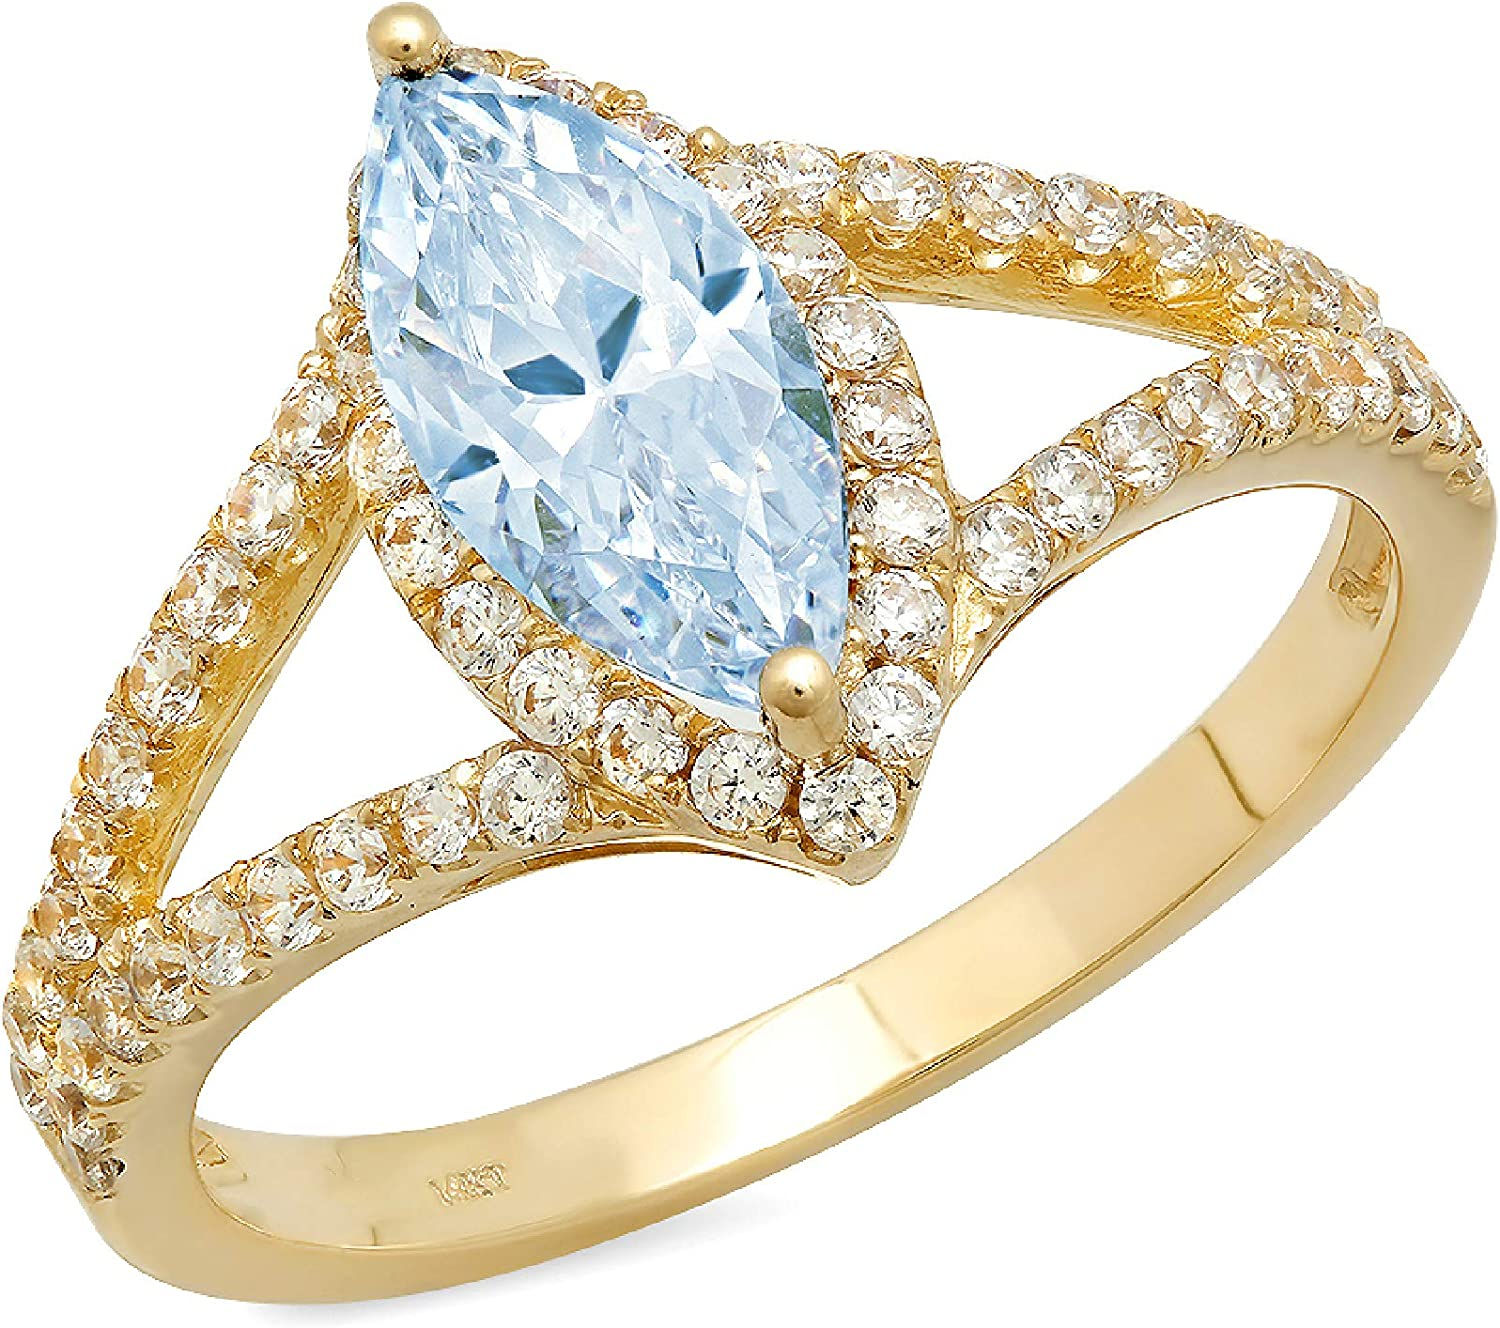 1.14ct Marquise Cut Solitaire split shank Halo Natural Sky Blue Topaz Gem Stone Ideal VVS1 Engagement Promise Statement Anniversary Bridal Wedding ring Solid 14k Yellow Gold